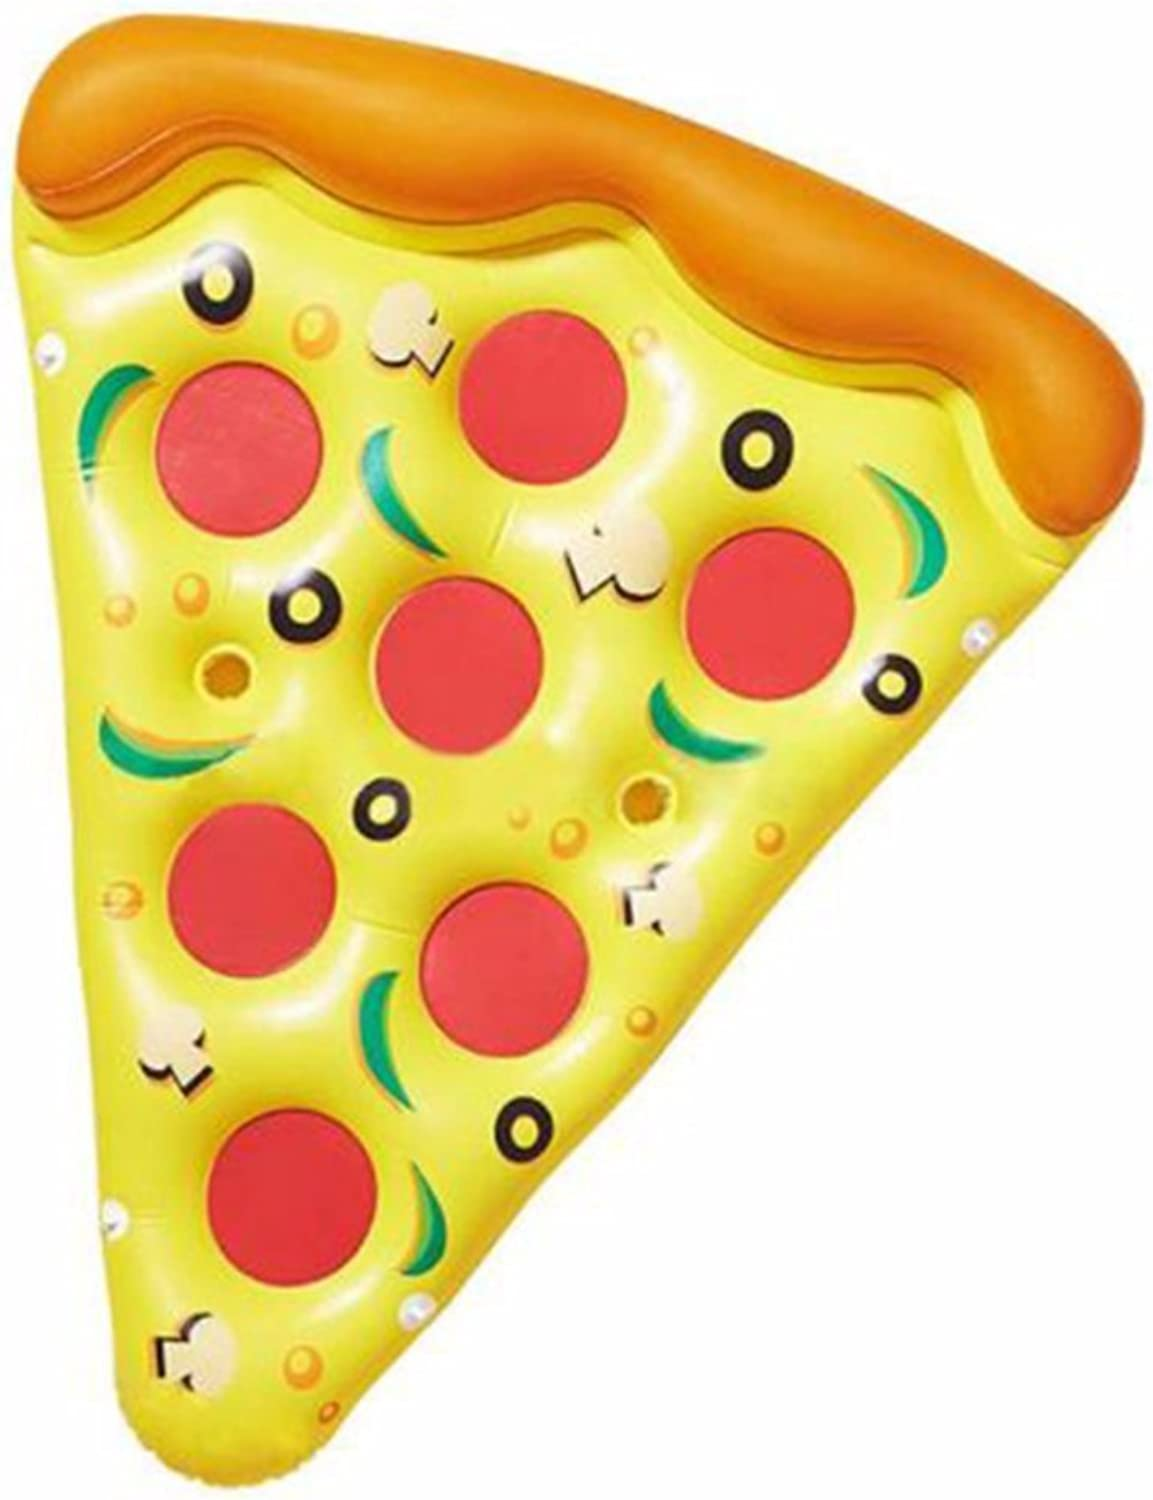 Mzj Riesen Aufblasbare Pizza Slice Pool Float, Spa Pool Float, Schwimmen Party Spielzeug, Sommer Pooling (1 Packung)